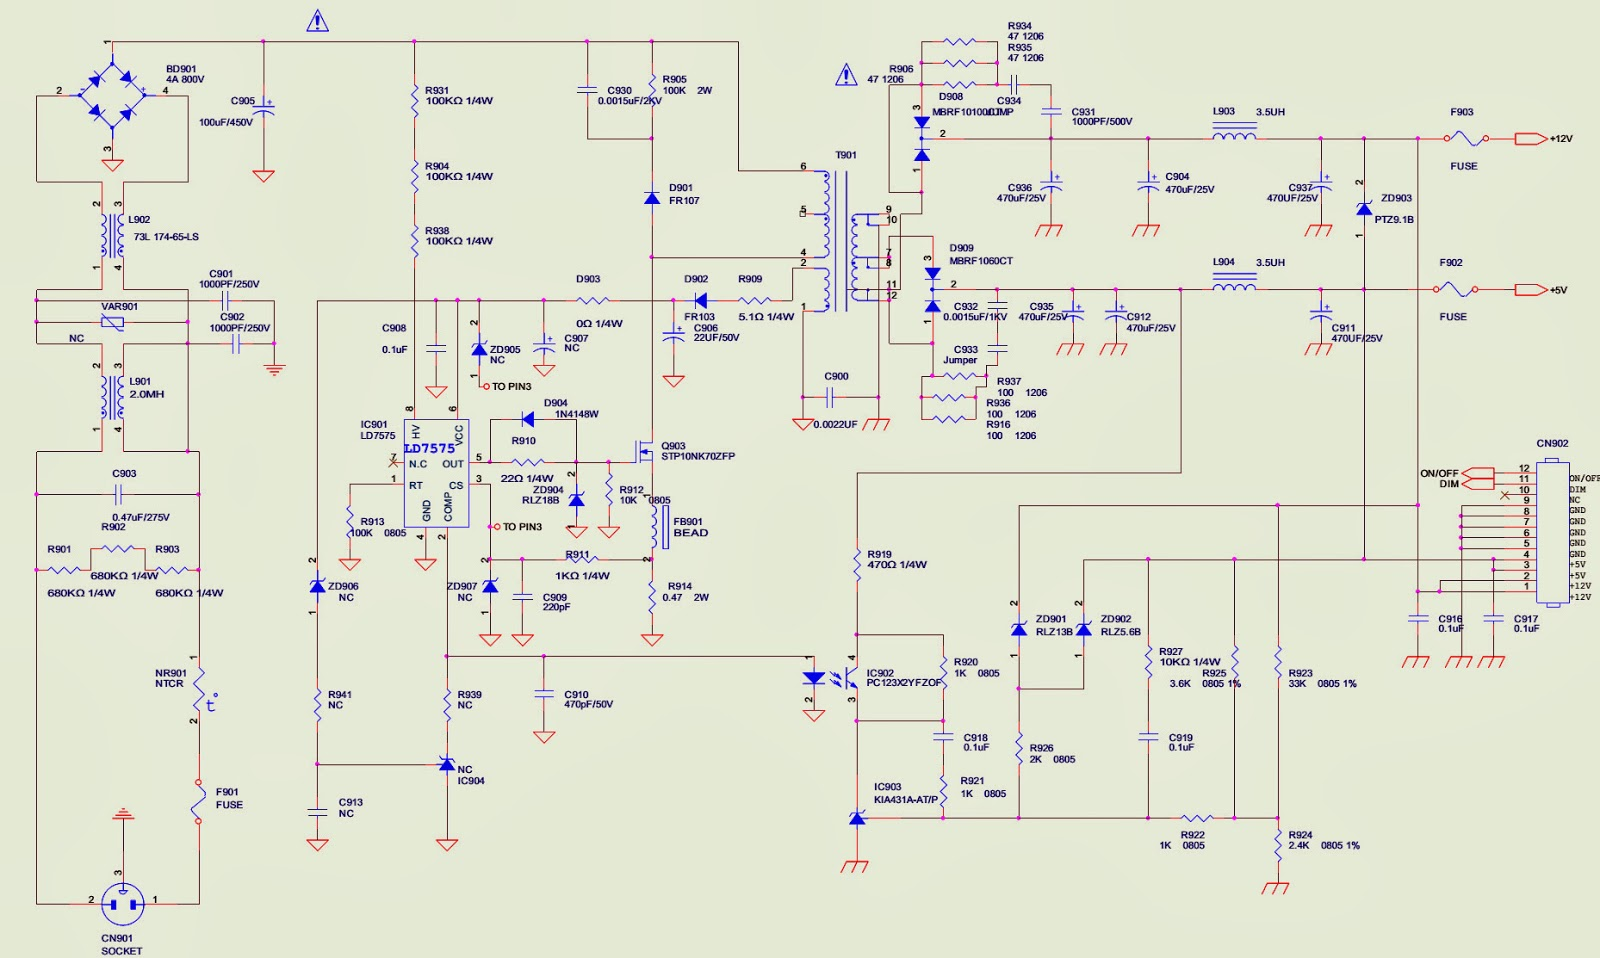 hight resolution of hcl hcm9lwat11 19 inch lcd monitor power supply schematic aoc lcd monitor schematic diagram lcd monitor schematic diagram